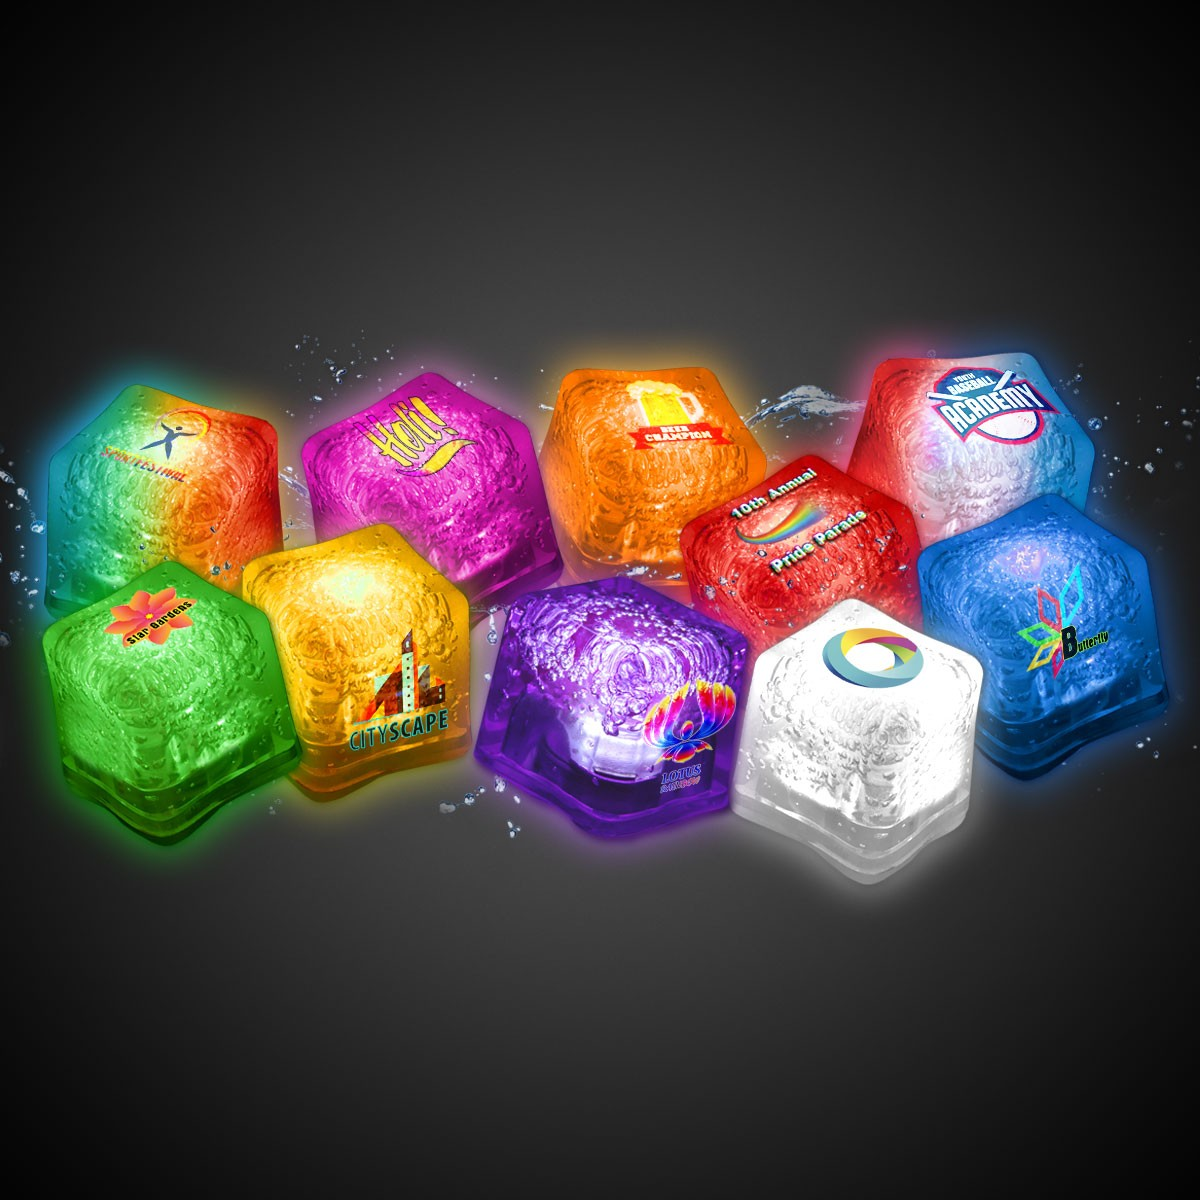 imprinted lited ice cubes variety of colors glow and light up products halloween holidays u0026 events